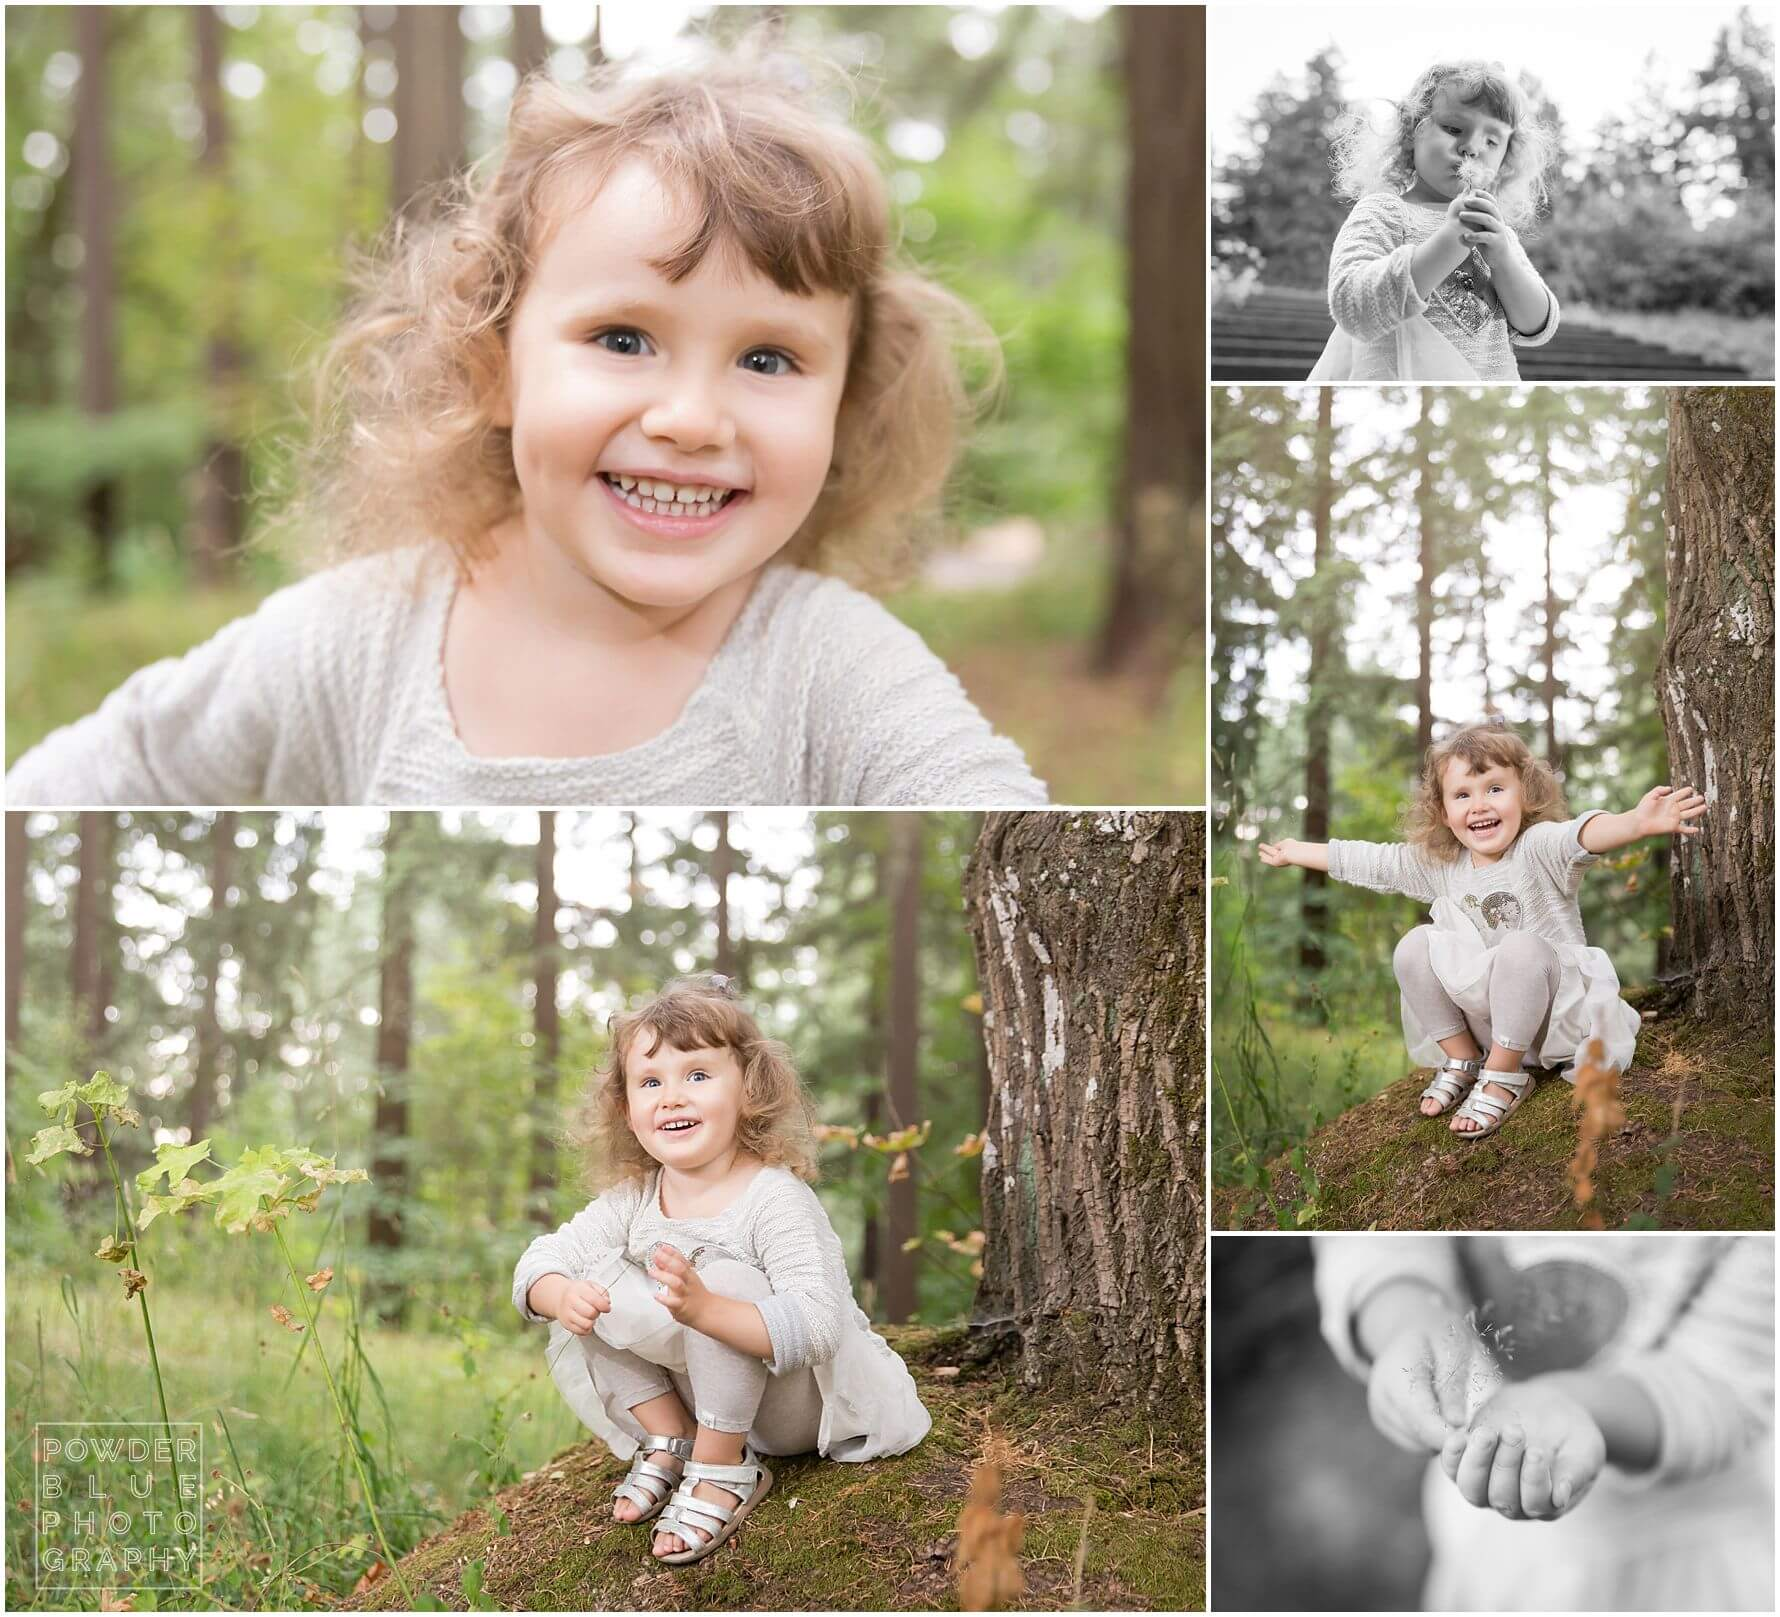 pittsburgh family photography family session at mt tabor park in portland oregon pine trees 3 year old girl butterfly wings